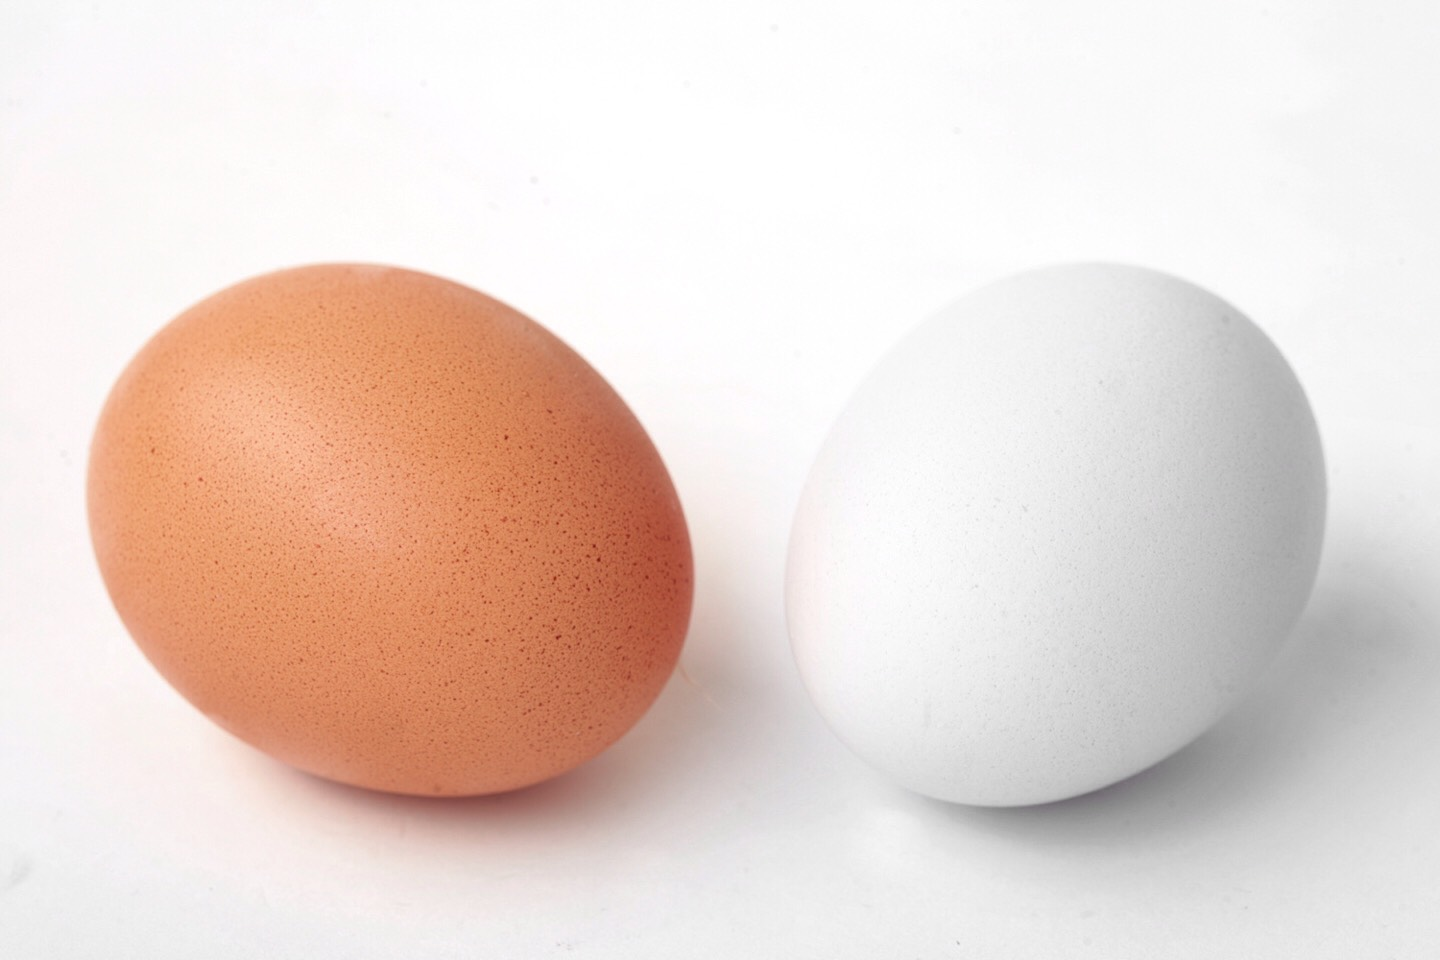 You can use white or brown eggs.Your egg color choice!